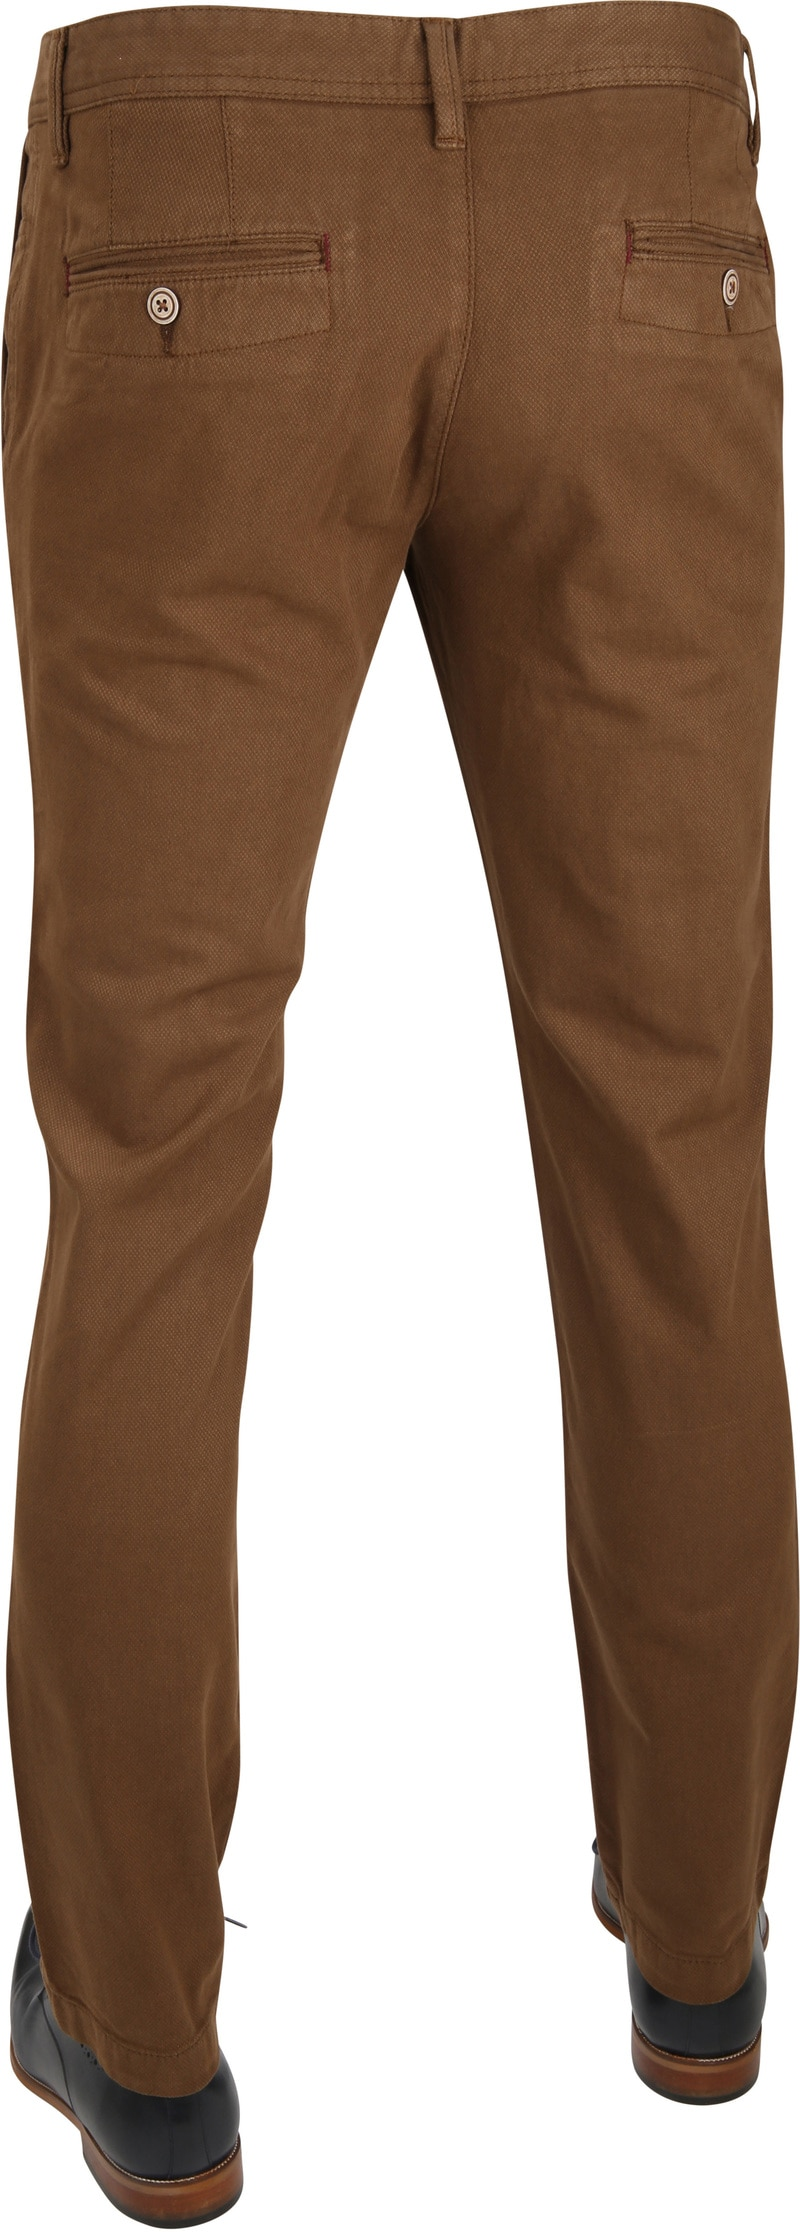 Suitable Chino Oakville Dessin Bruin foto 2